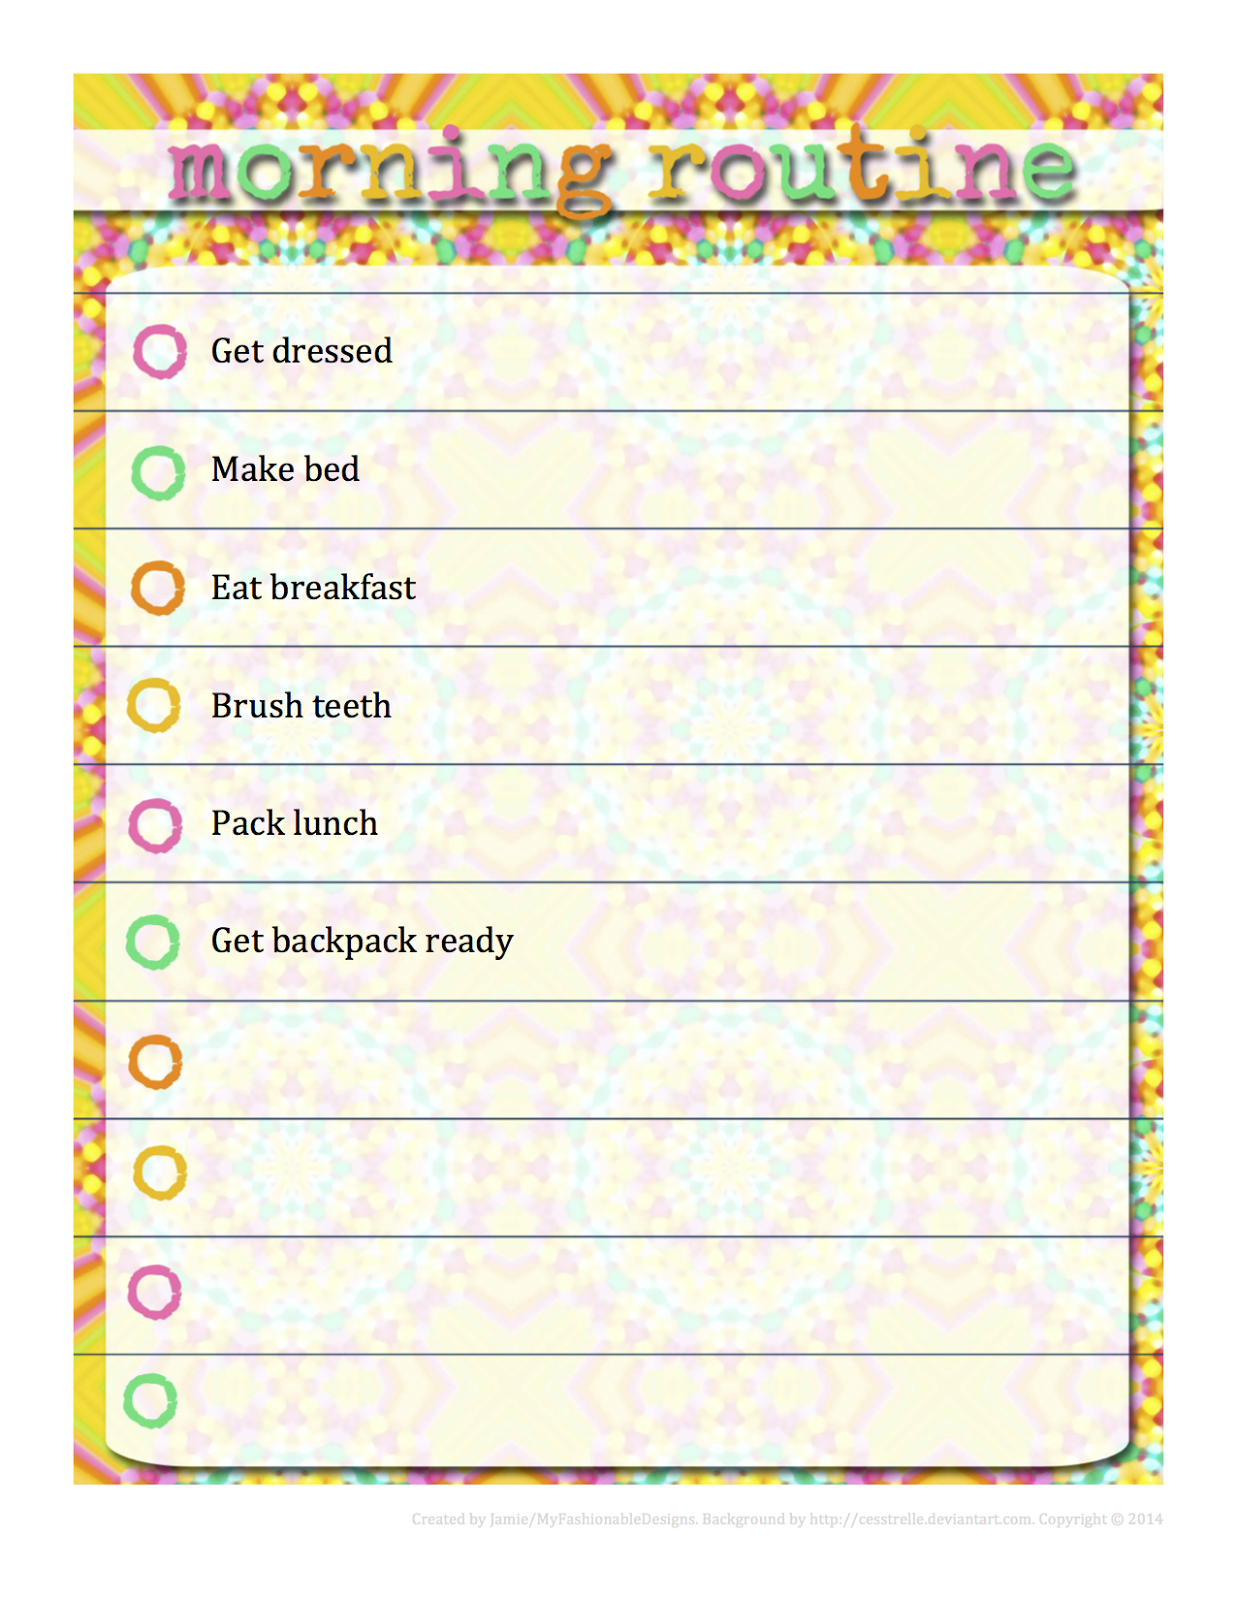 morning routine chart free download editable in word kids